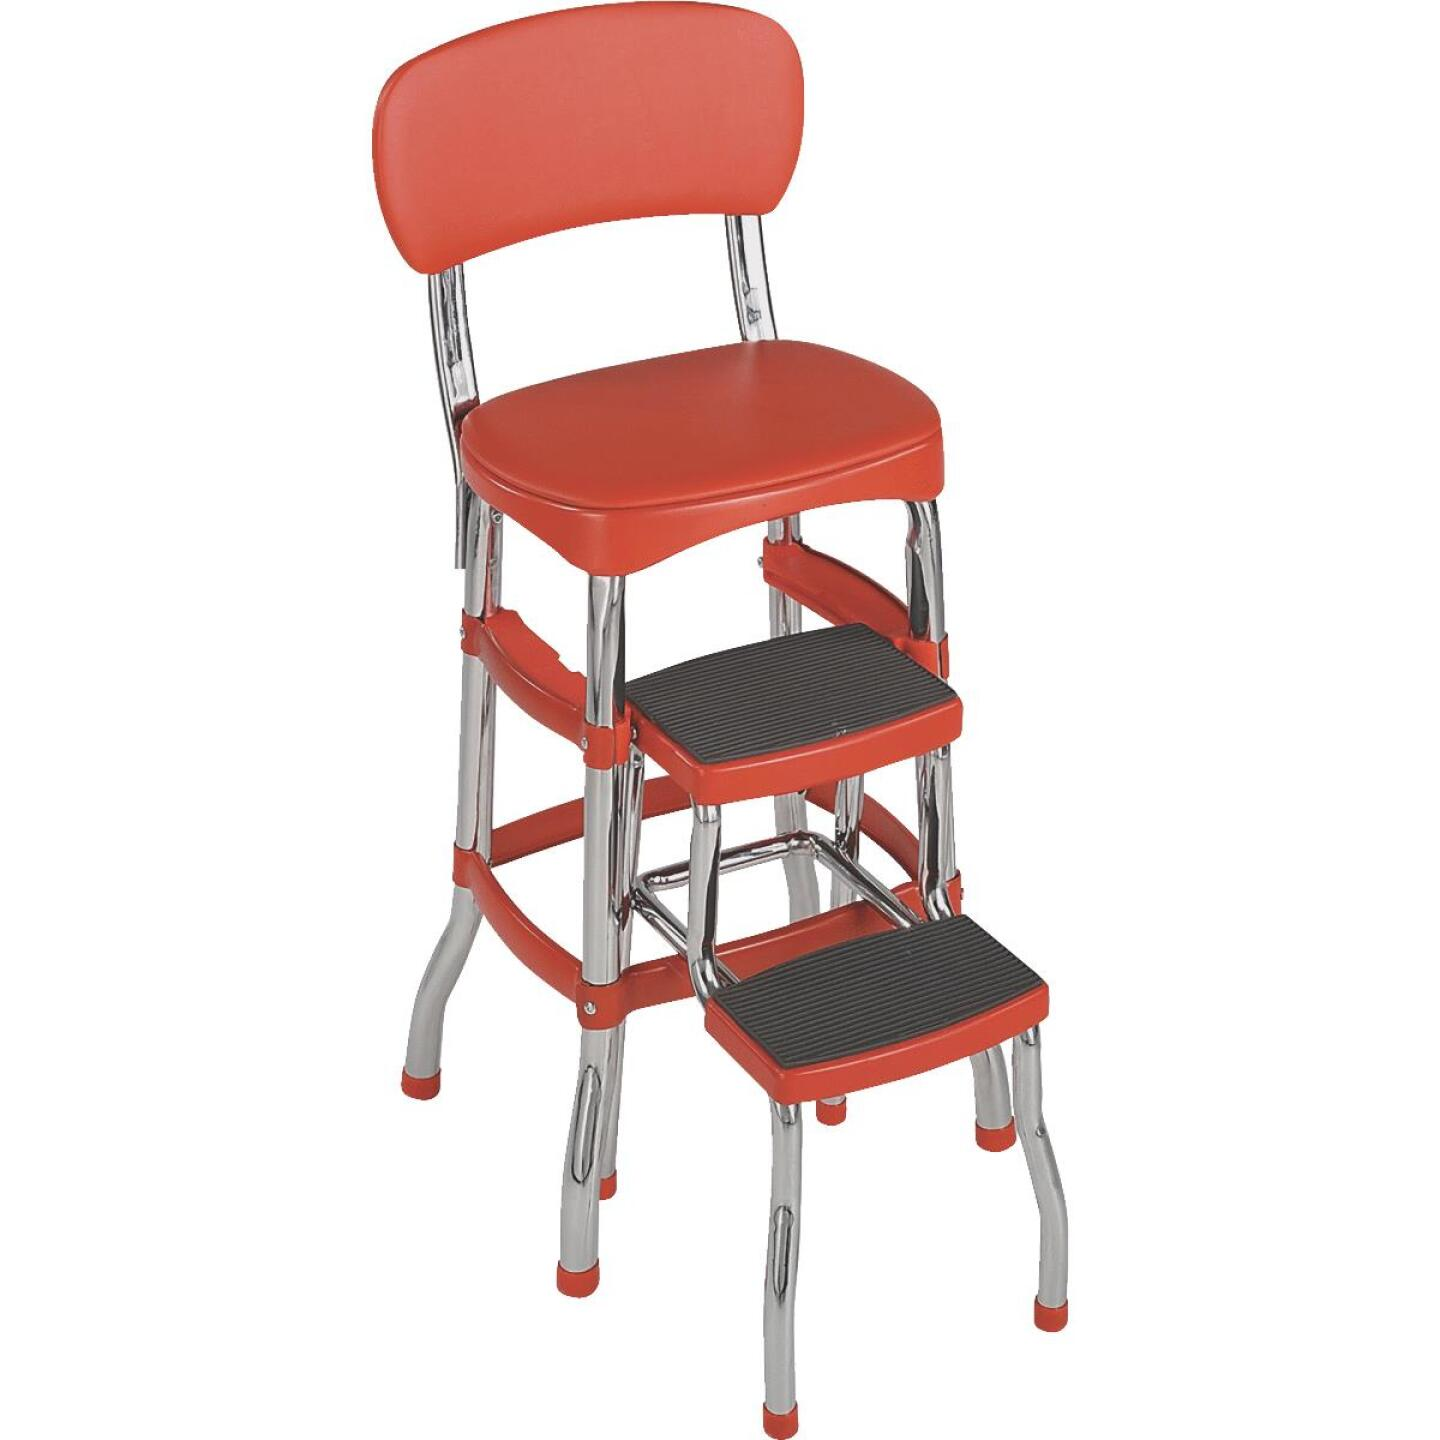 COSCO Retro Red 2-Step Stool Chair Image 1